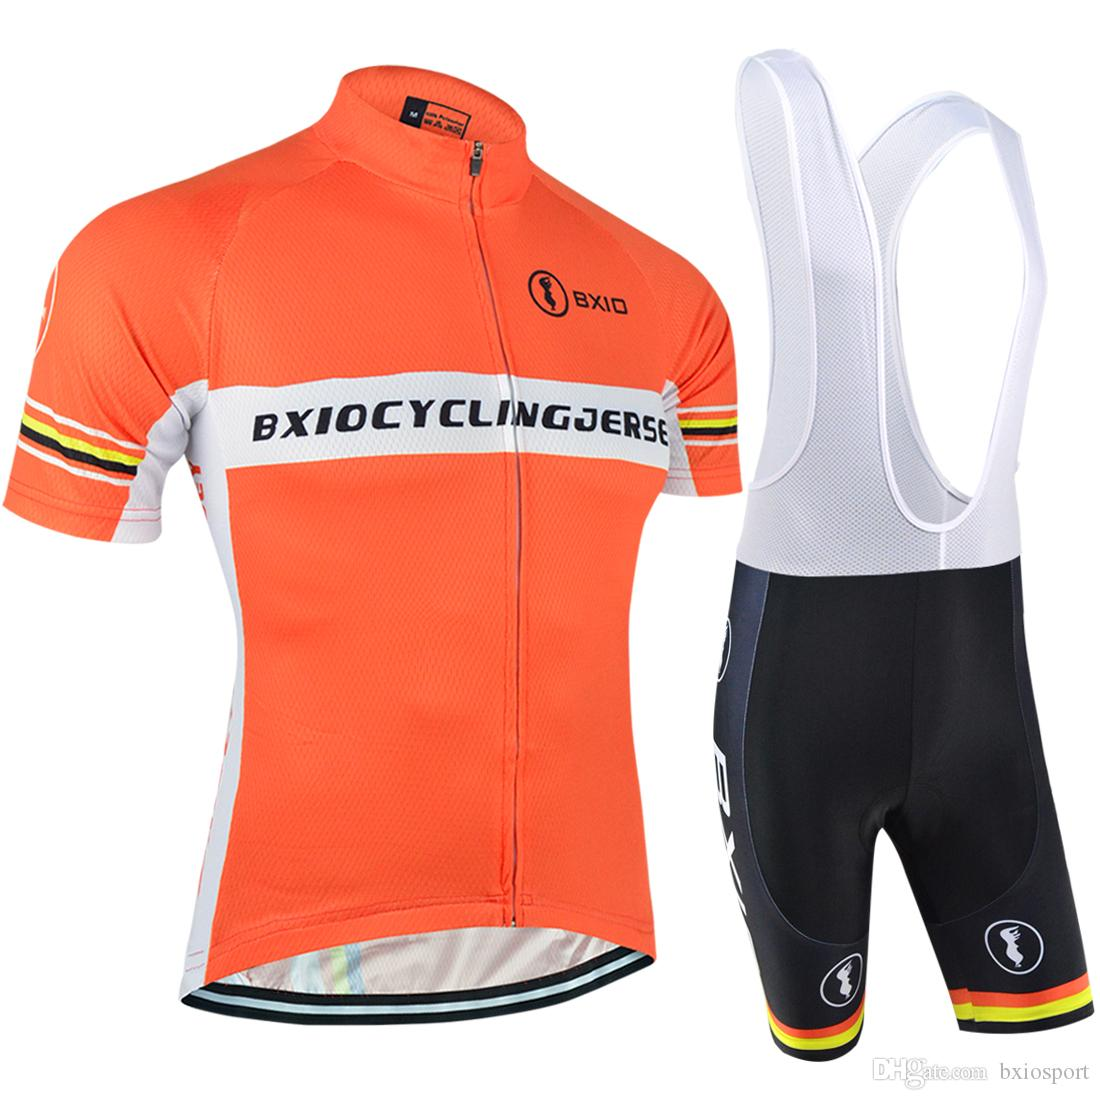 BXIO Brand New Cycle Clothing Summer Short Sleeve Bike Jersey And Pants  Cool Orange Road Bicycle Jerseys Quick Dry Bike Clothing BX 033 Cycle Gear  Cycle ... 0ef6ceaa2